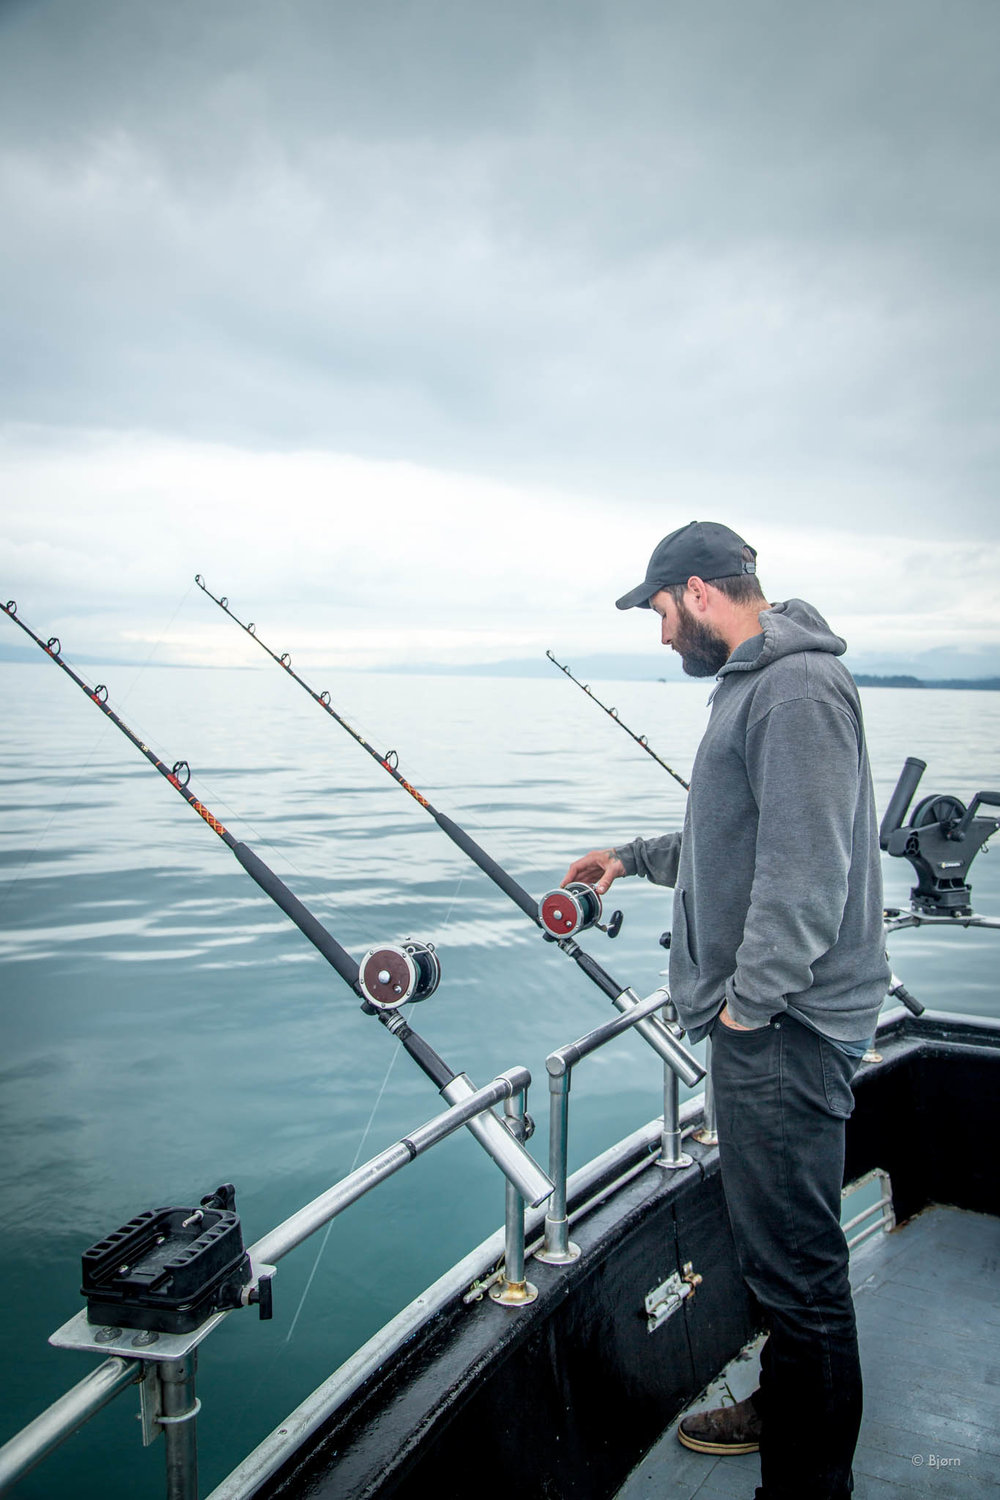 Billy fishing for halibut - Kachemak Bay, Alaska.